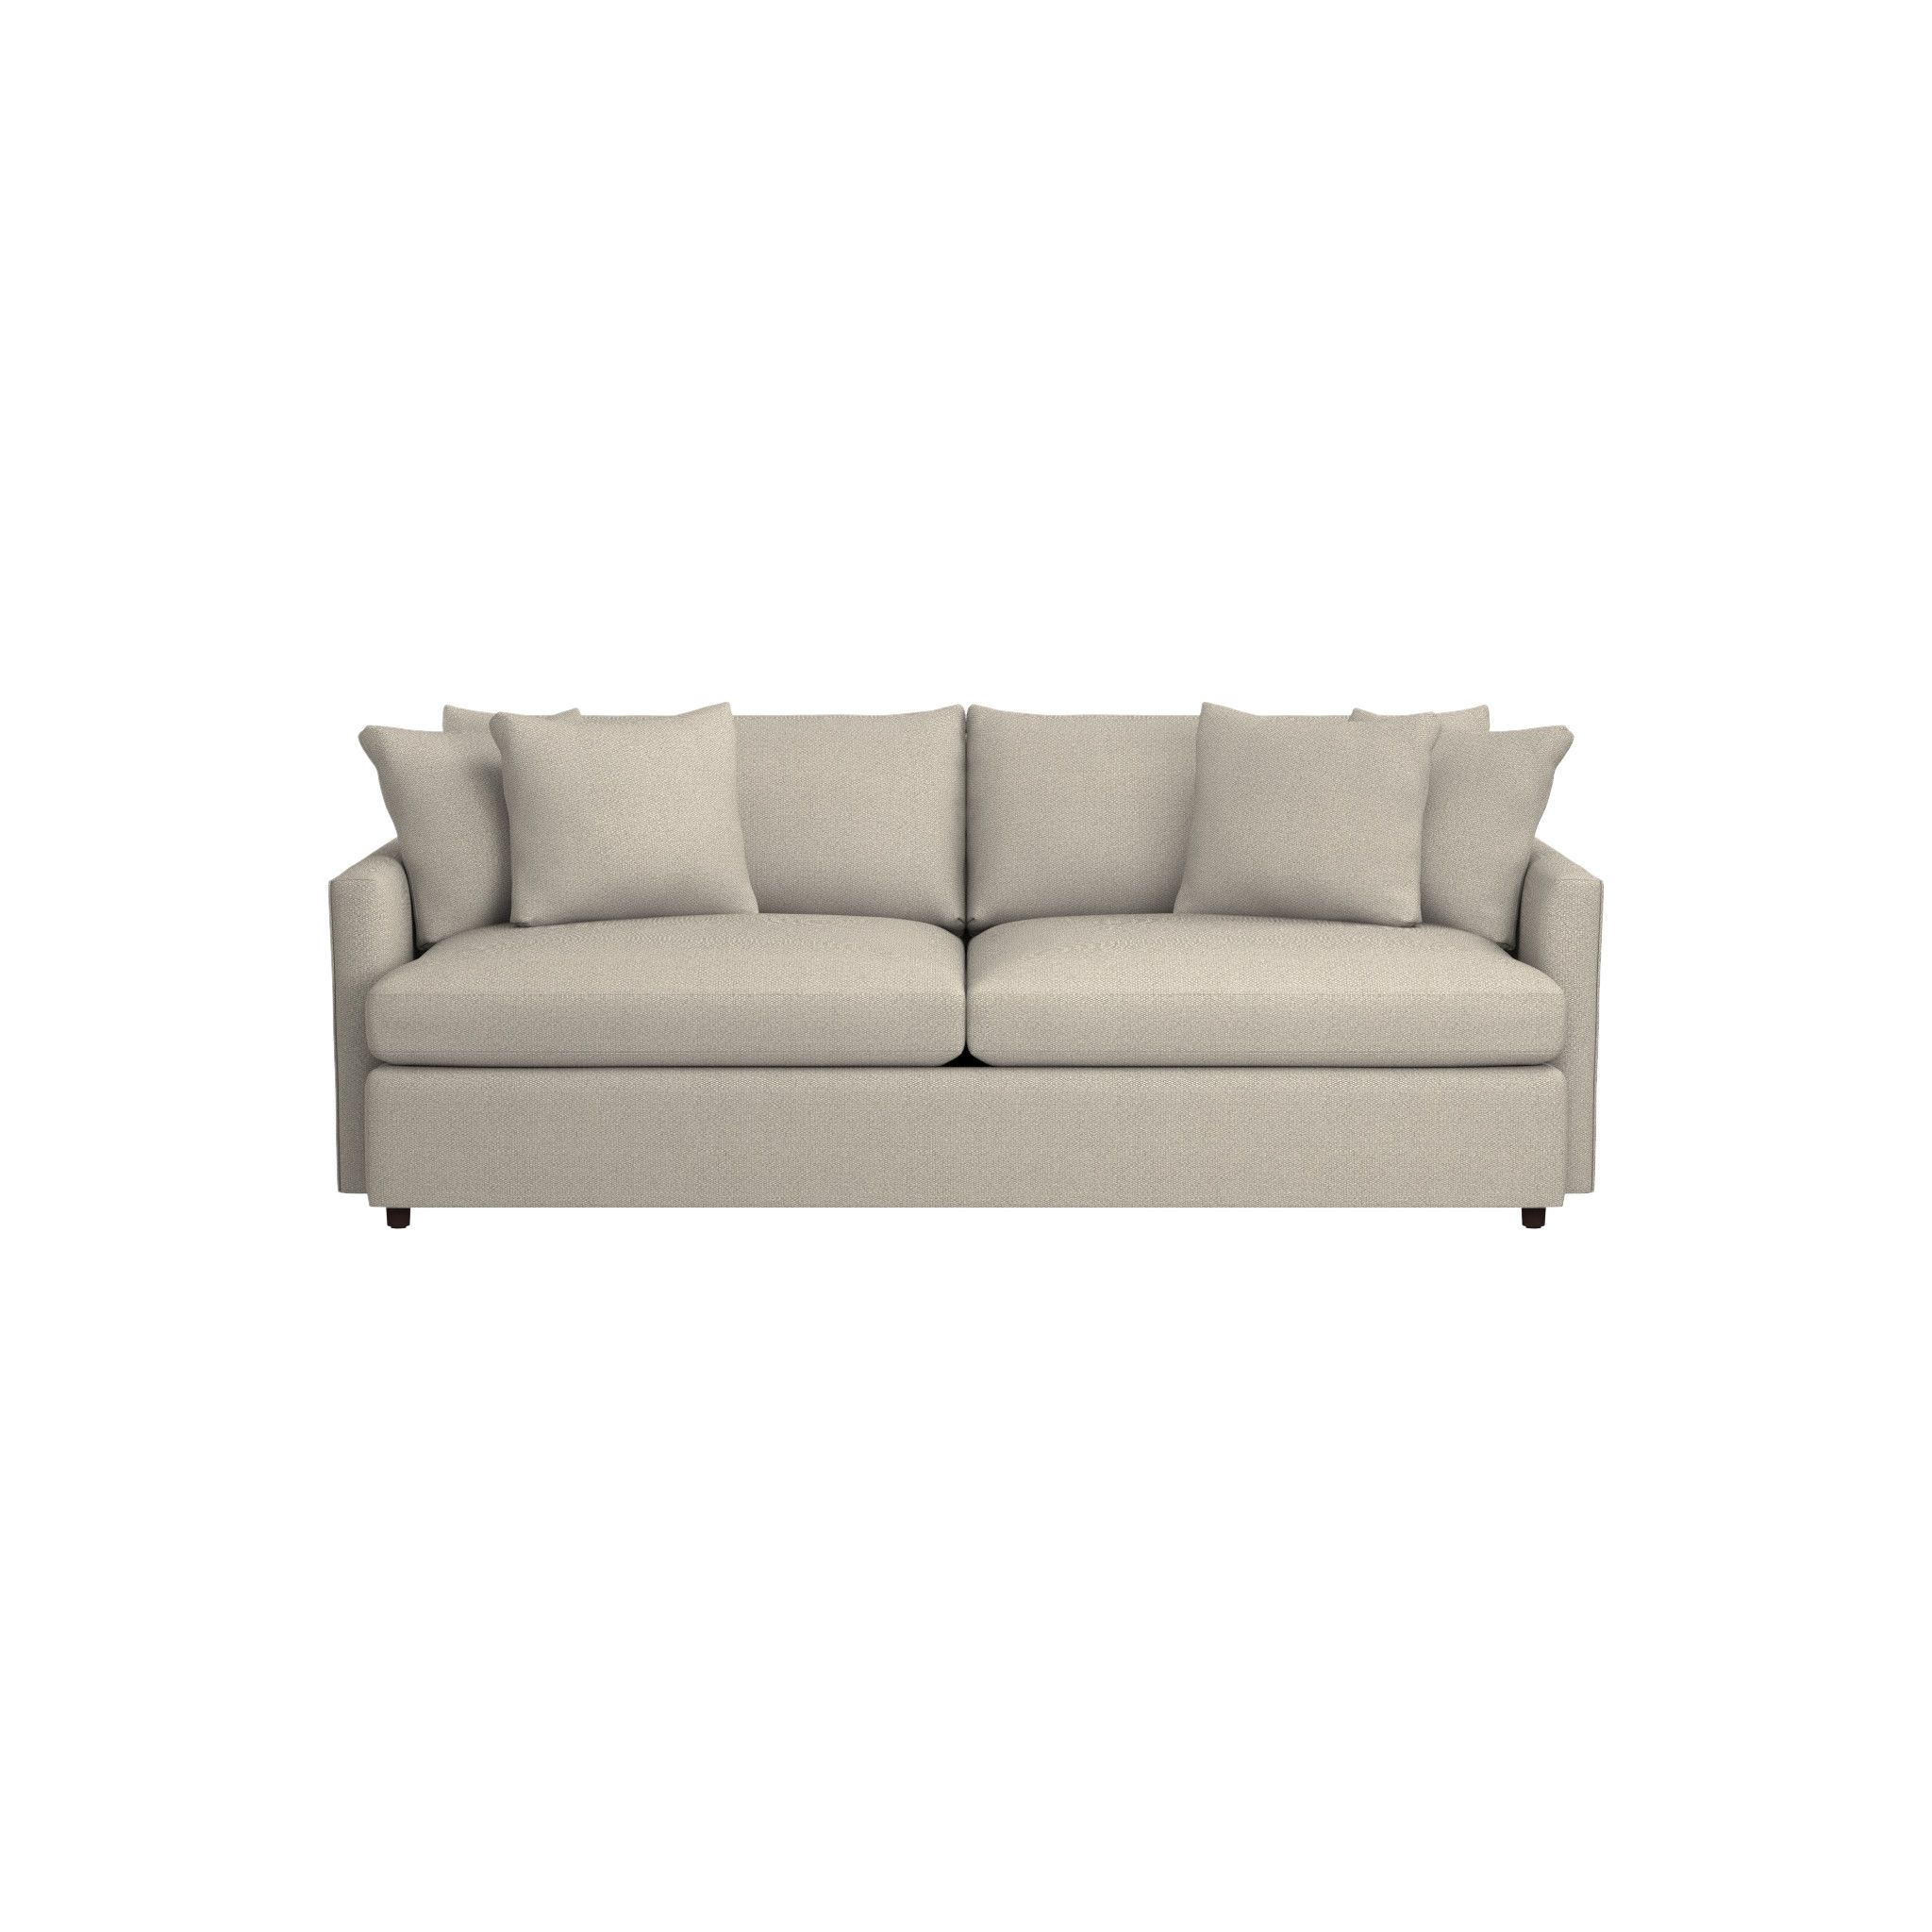 Crate and Barrel Couch | Crate and Barrel Chairs | Crate and Barrel Style Furniture for Less